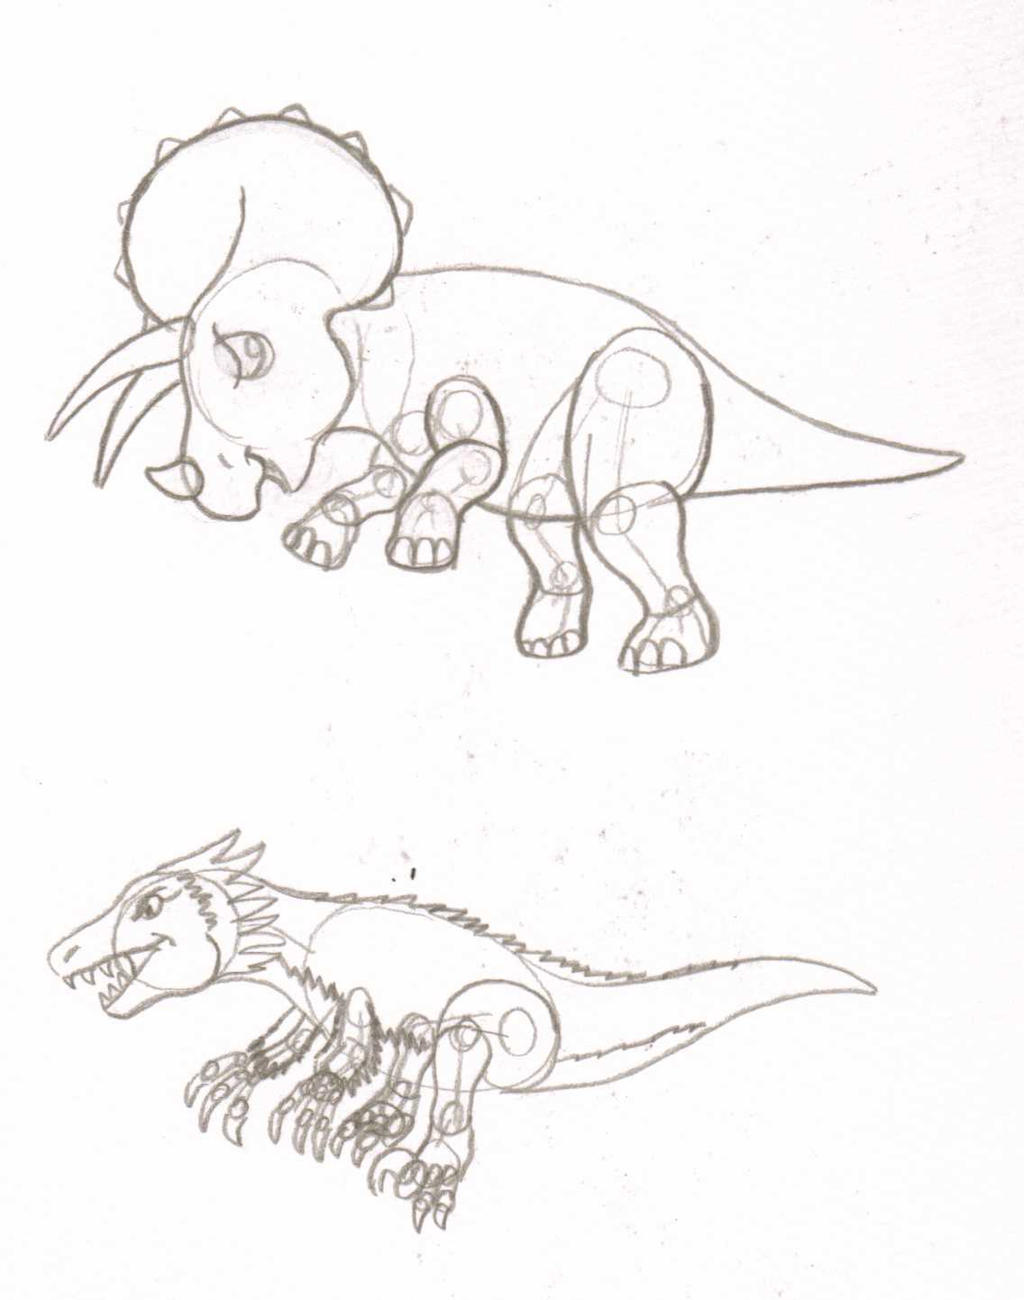 Pin troodon coloring page on pinterest for Troodon coloring page